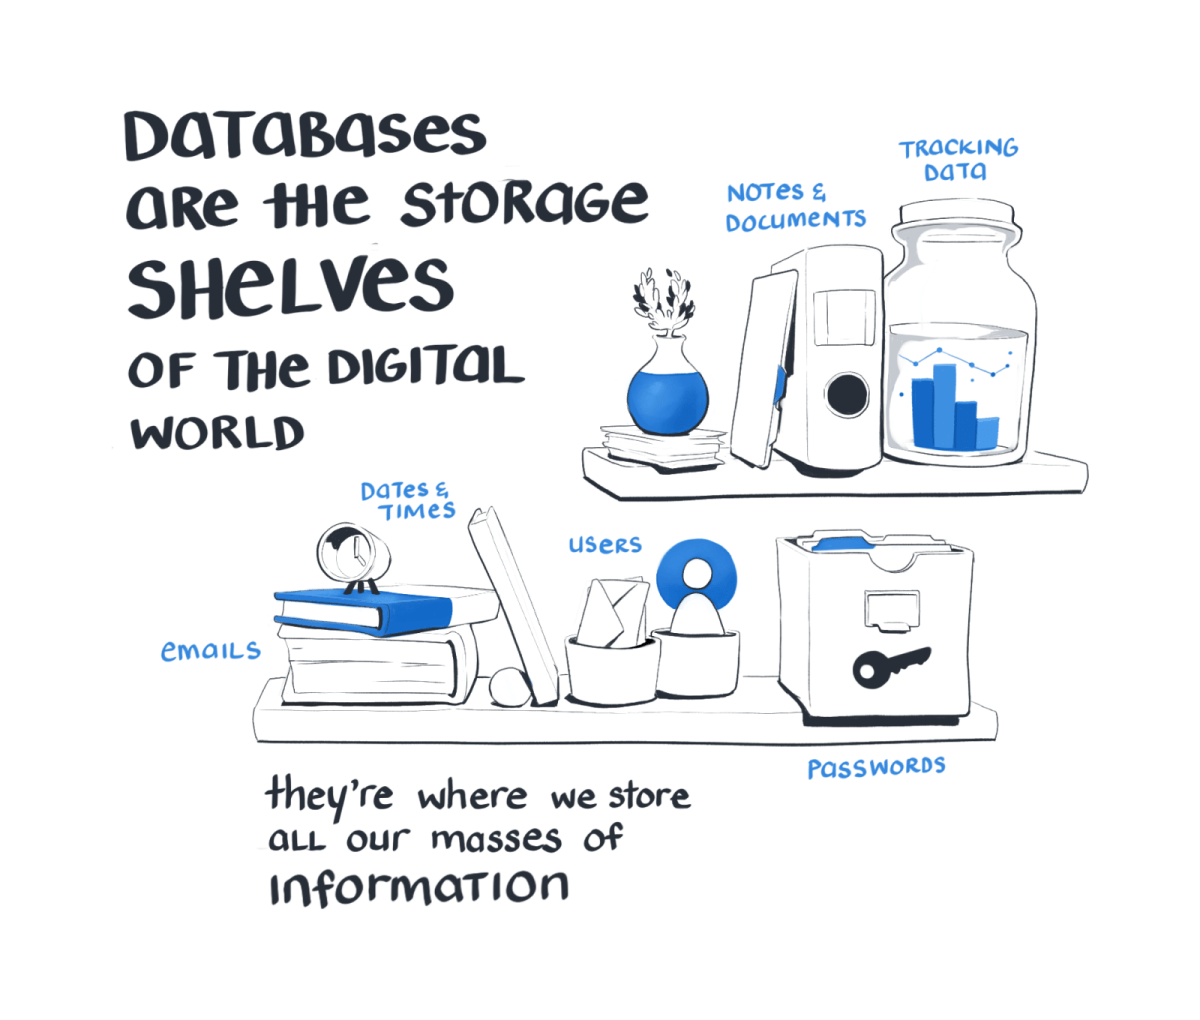 Databases are the storage shelves of the digital world. They're where we store all our masses of information.